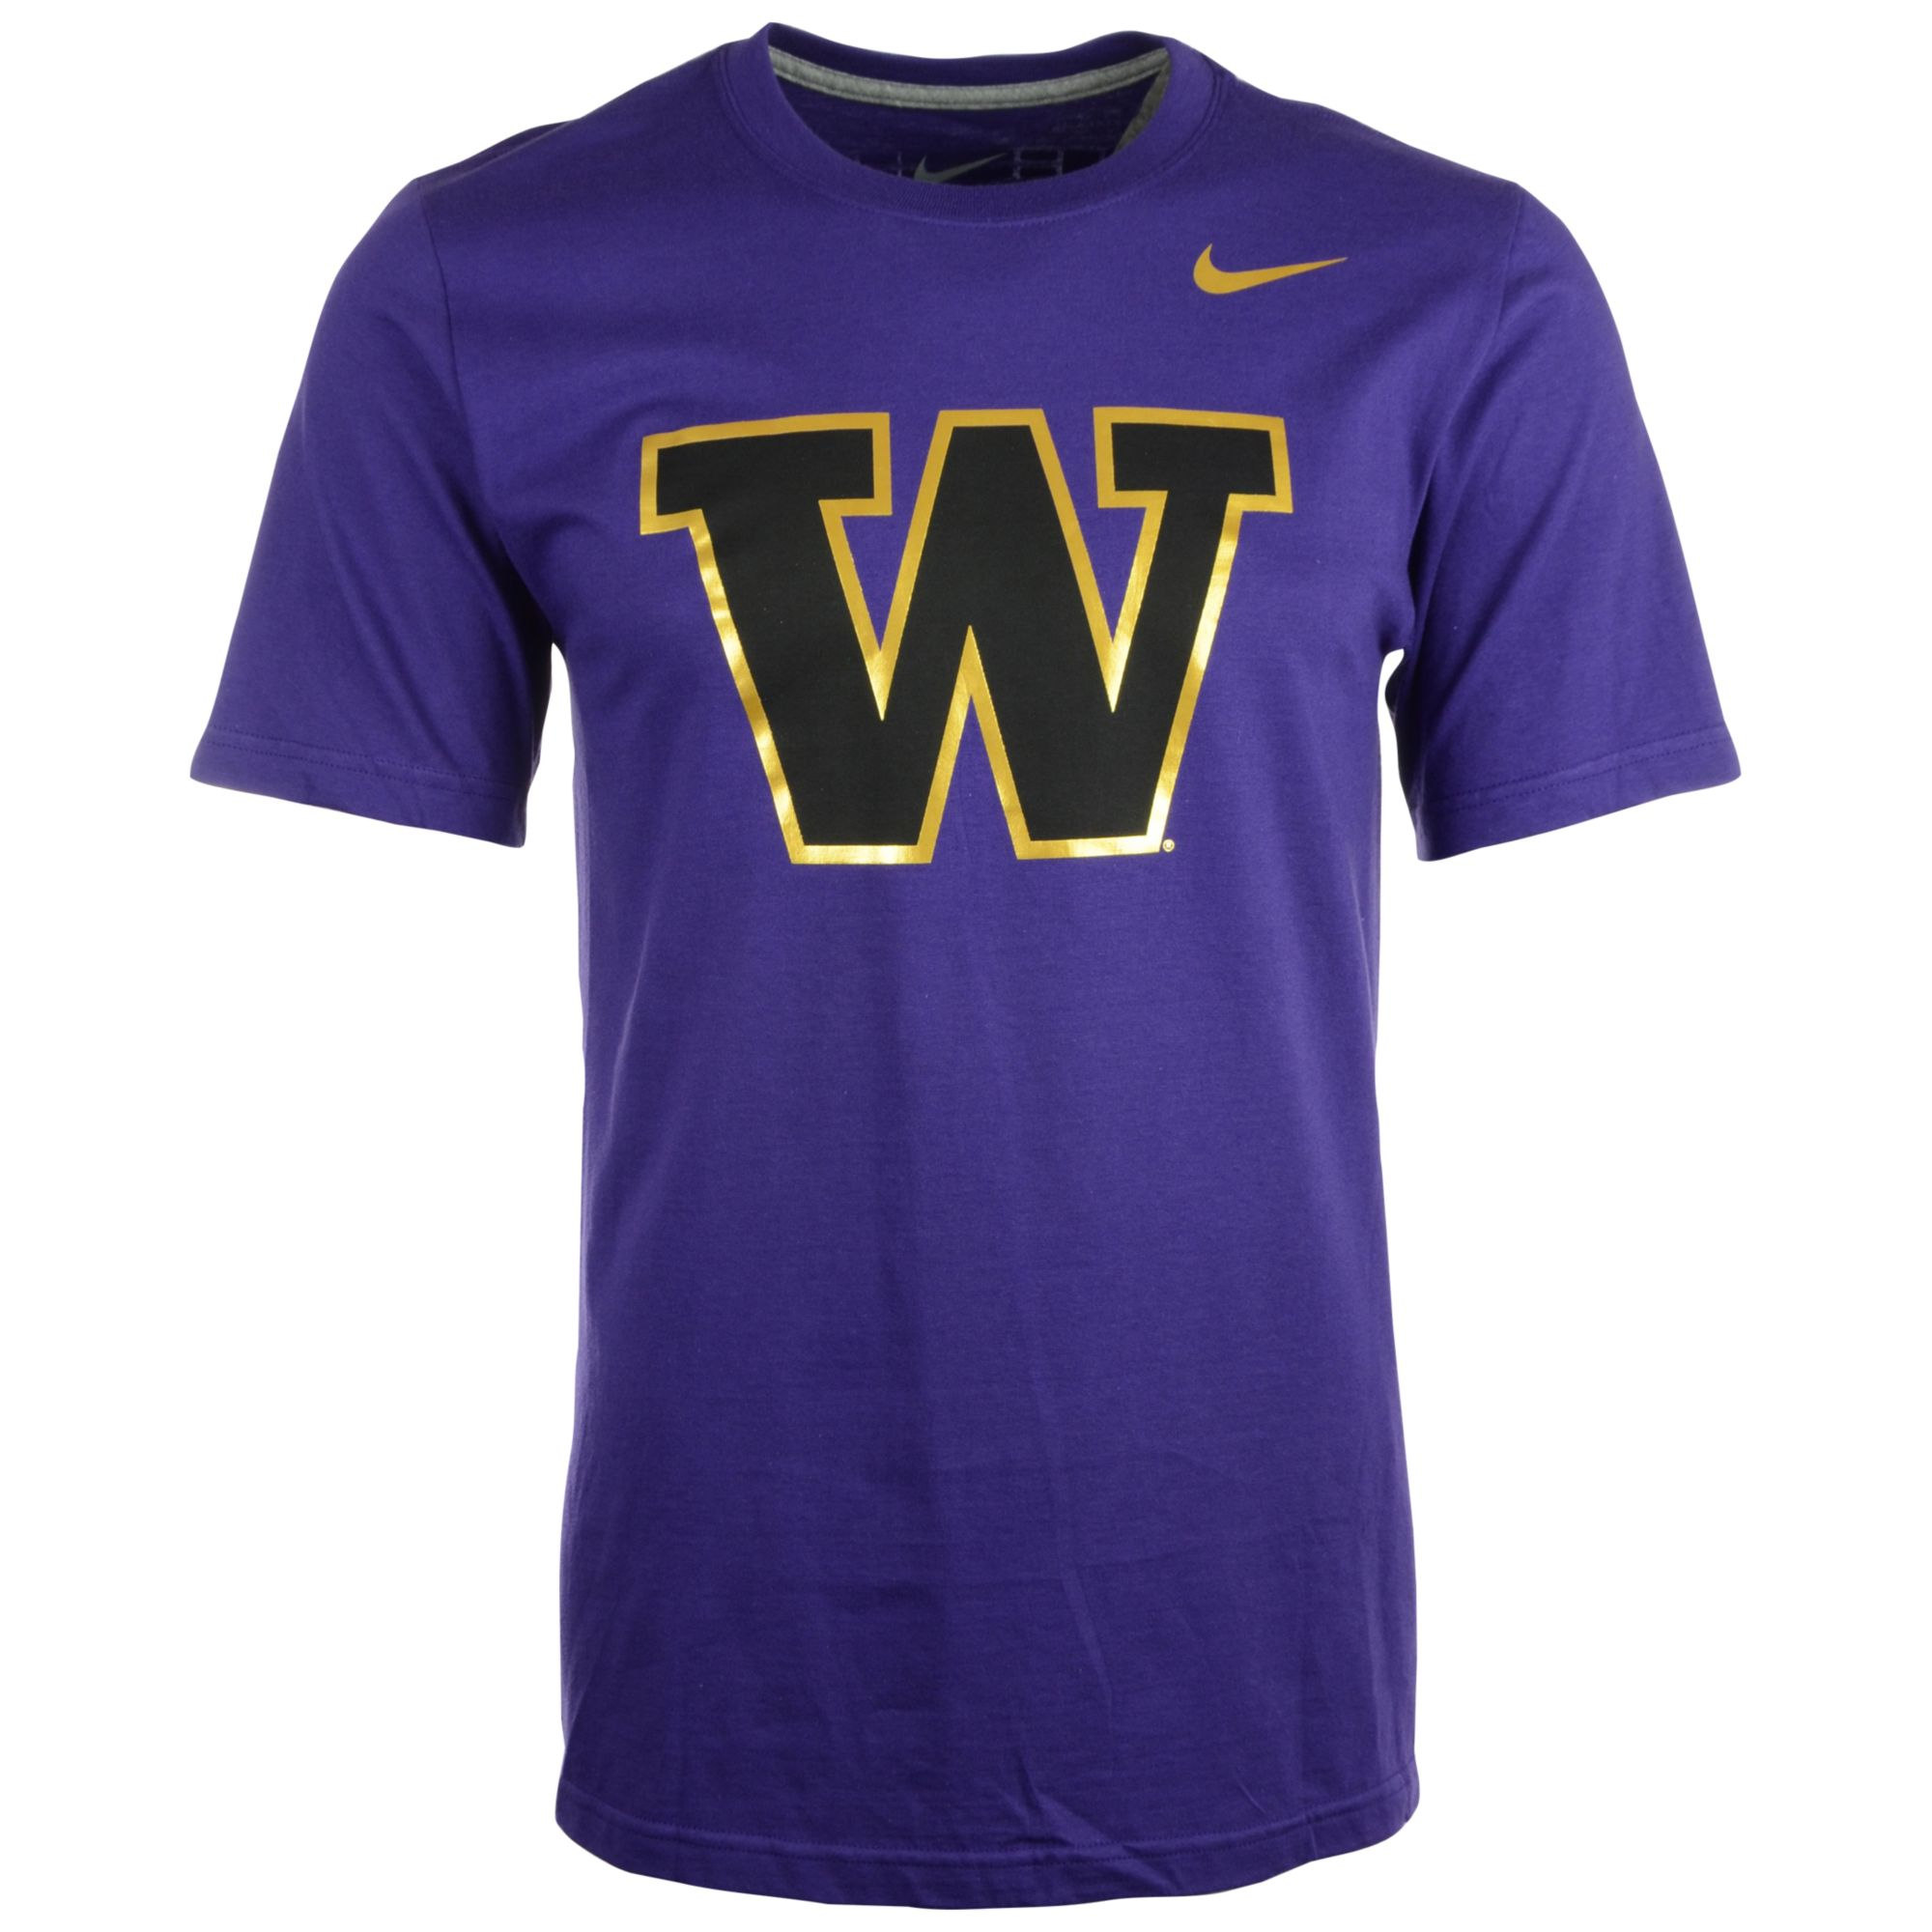 Nike Mens Shortsleeve Washington Huskies Tshirt In Purple